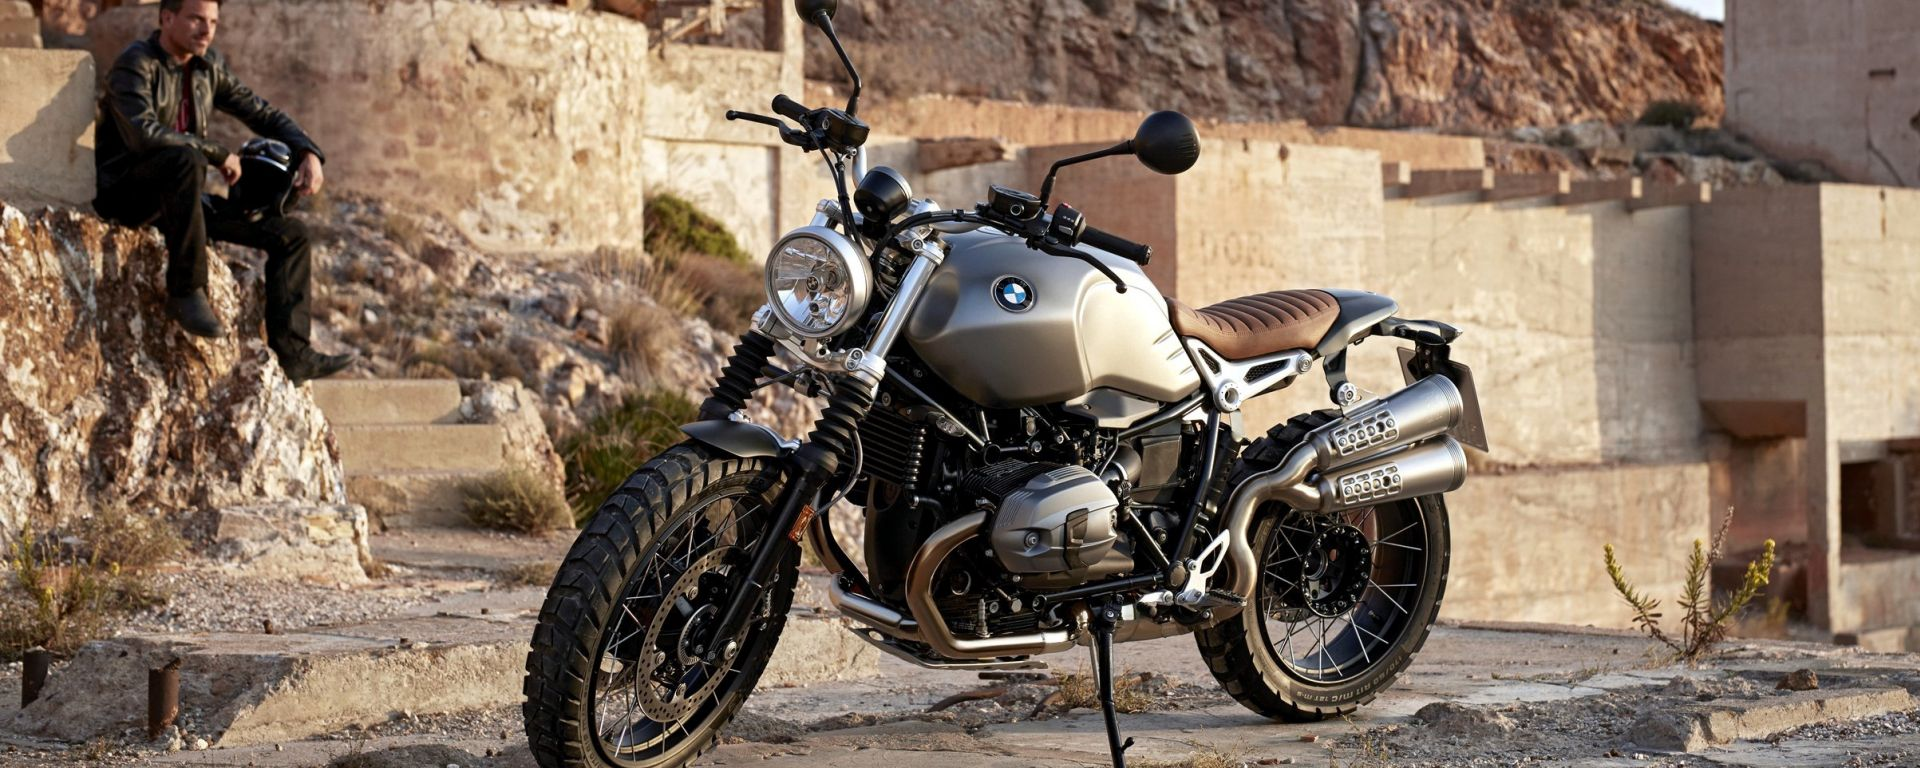 novit moto bmw r ninet scrambler motorbox. Black Bedroom Furniture Sets. Home Design Ideas